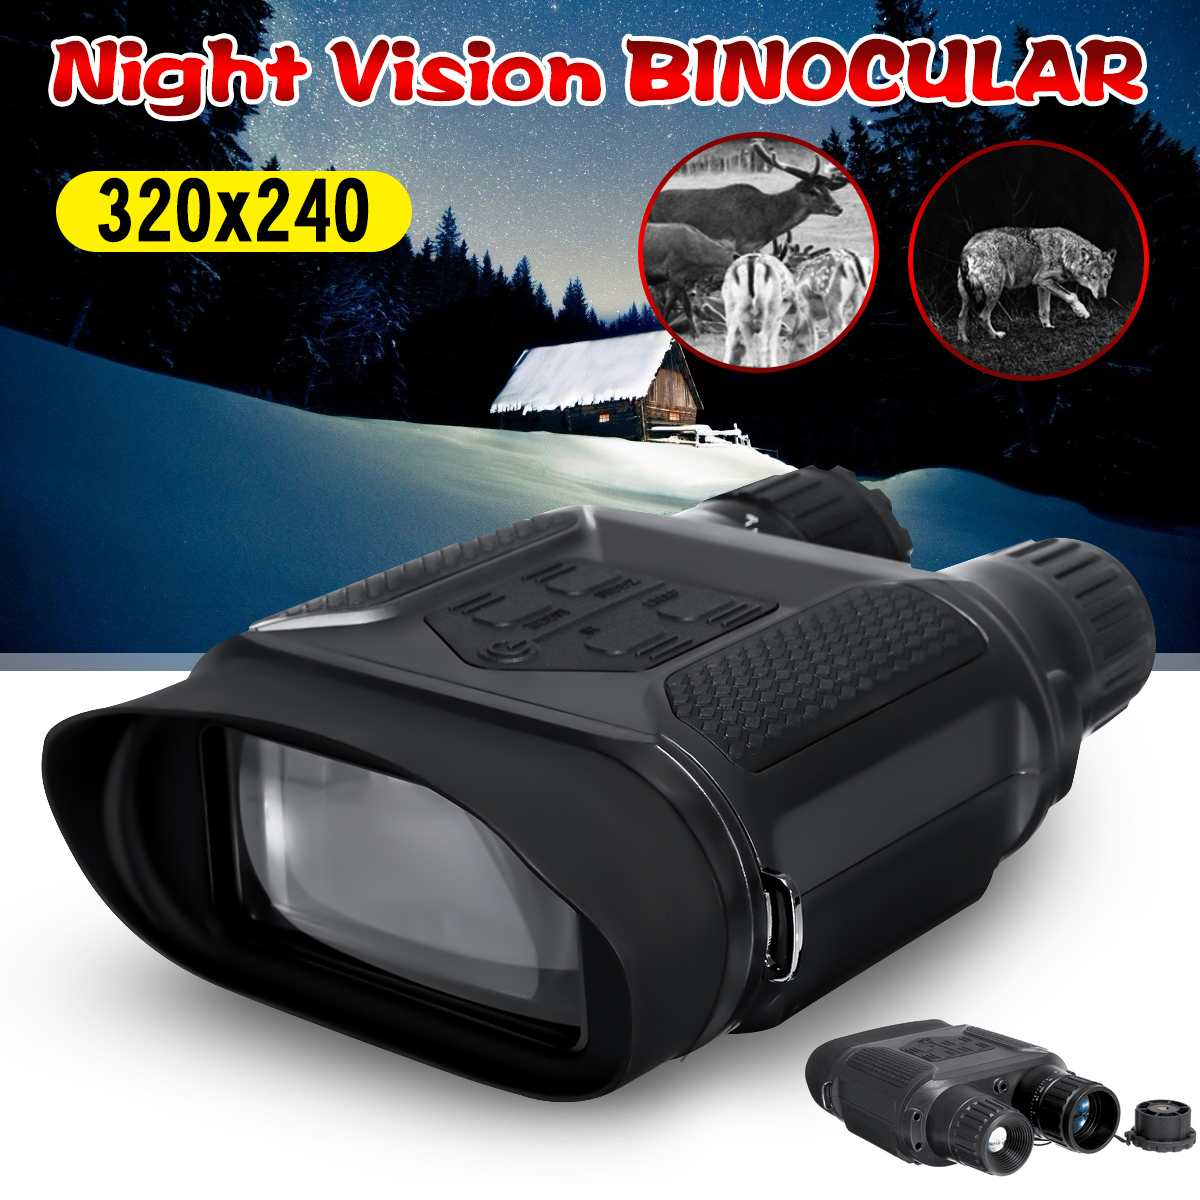 Night Vision Binocular Digital Infrared Night Vision Scope 1300ft/400m Observing Distance Photo Camera & Video Recorder